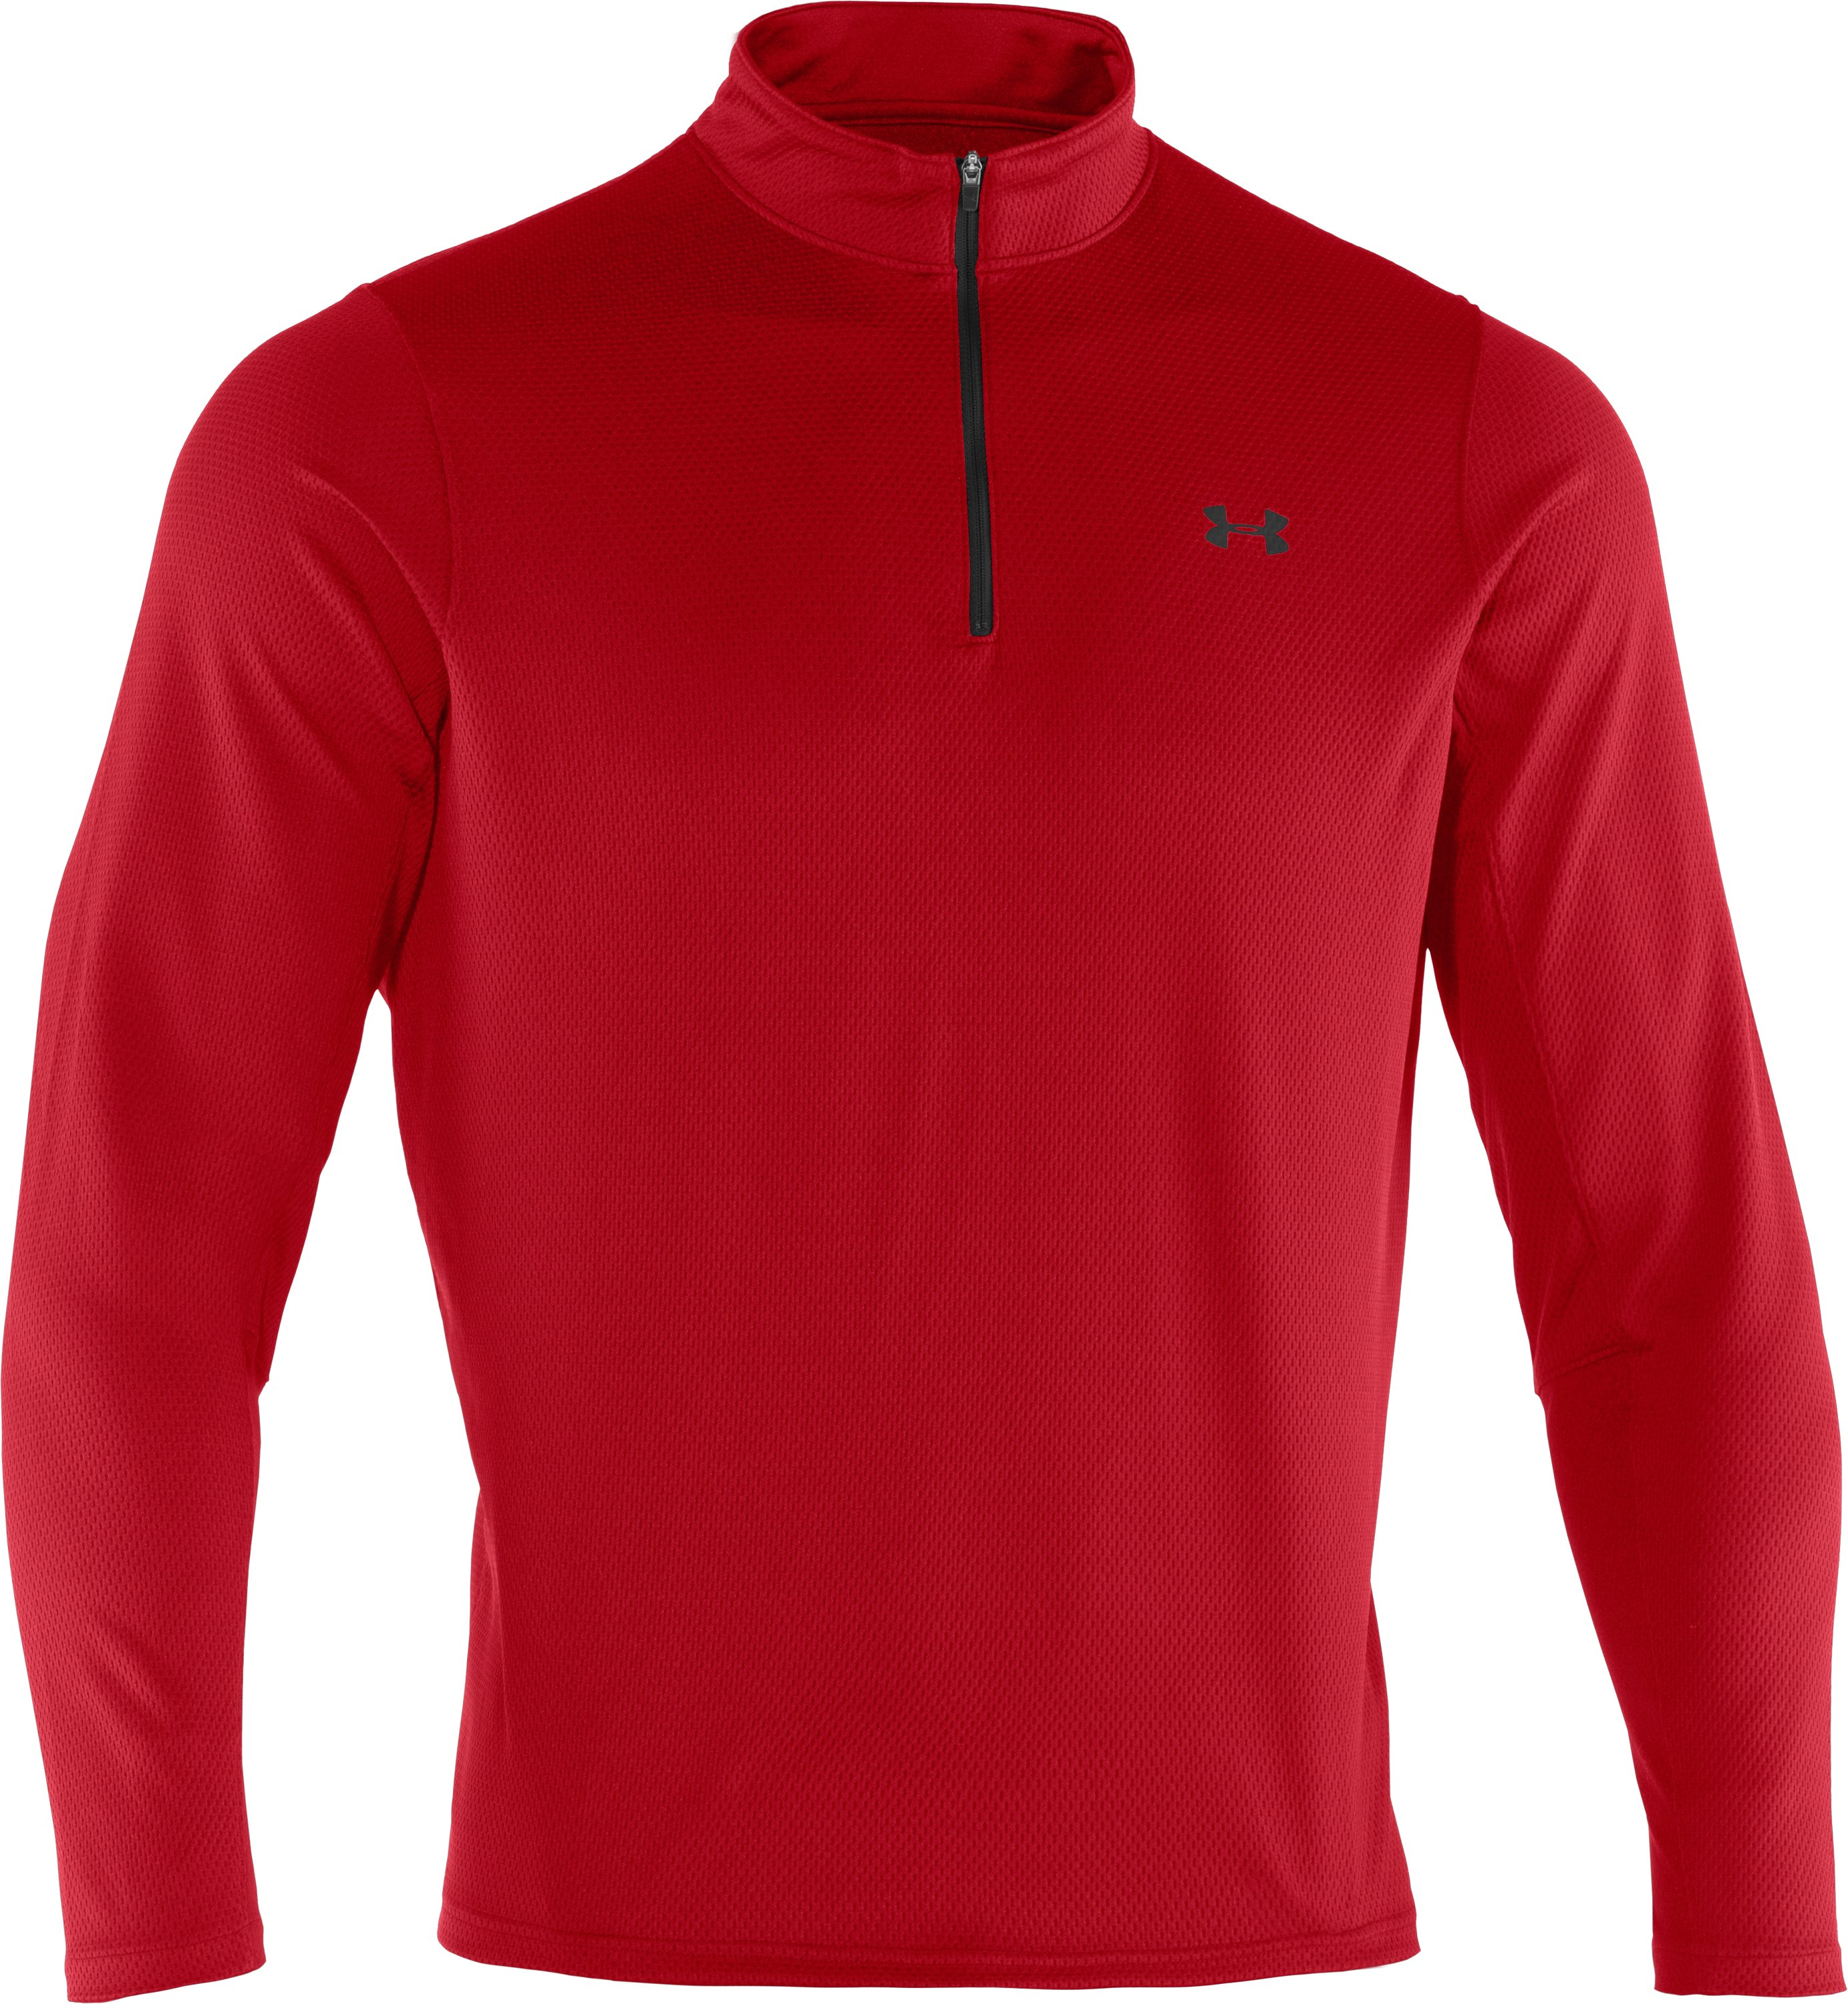 Men's AllSeasonGear® ¼ Zip Golf Jacket, Red